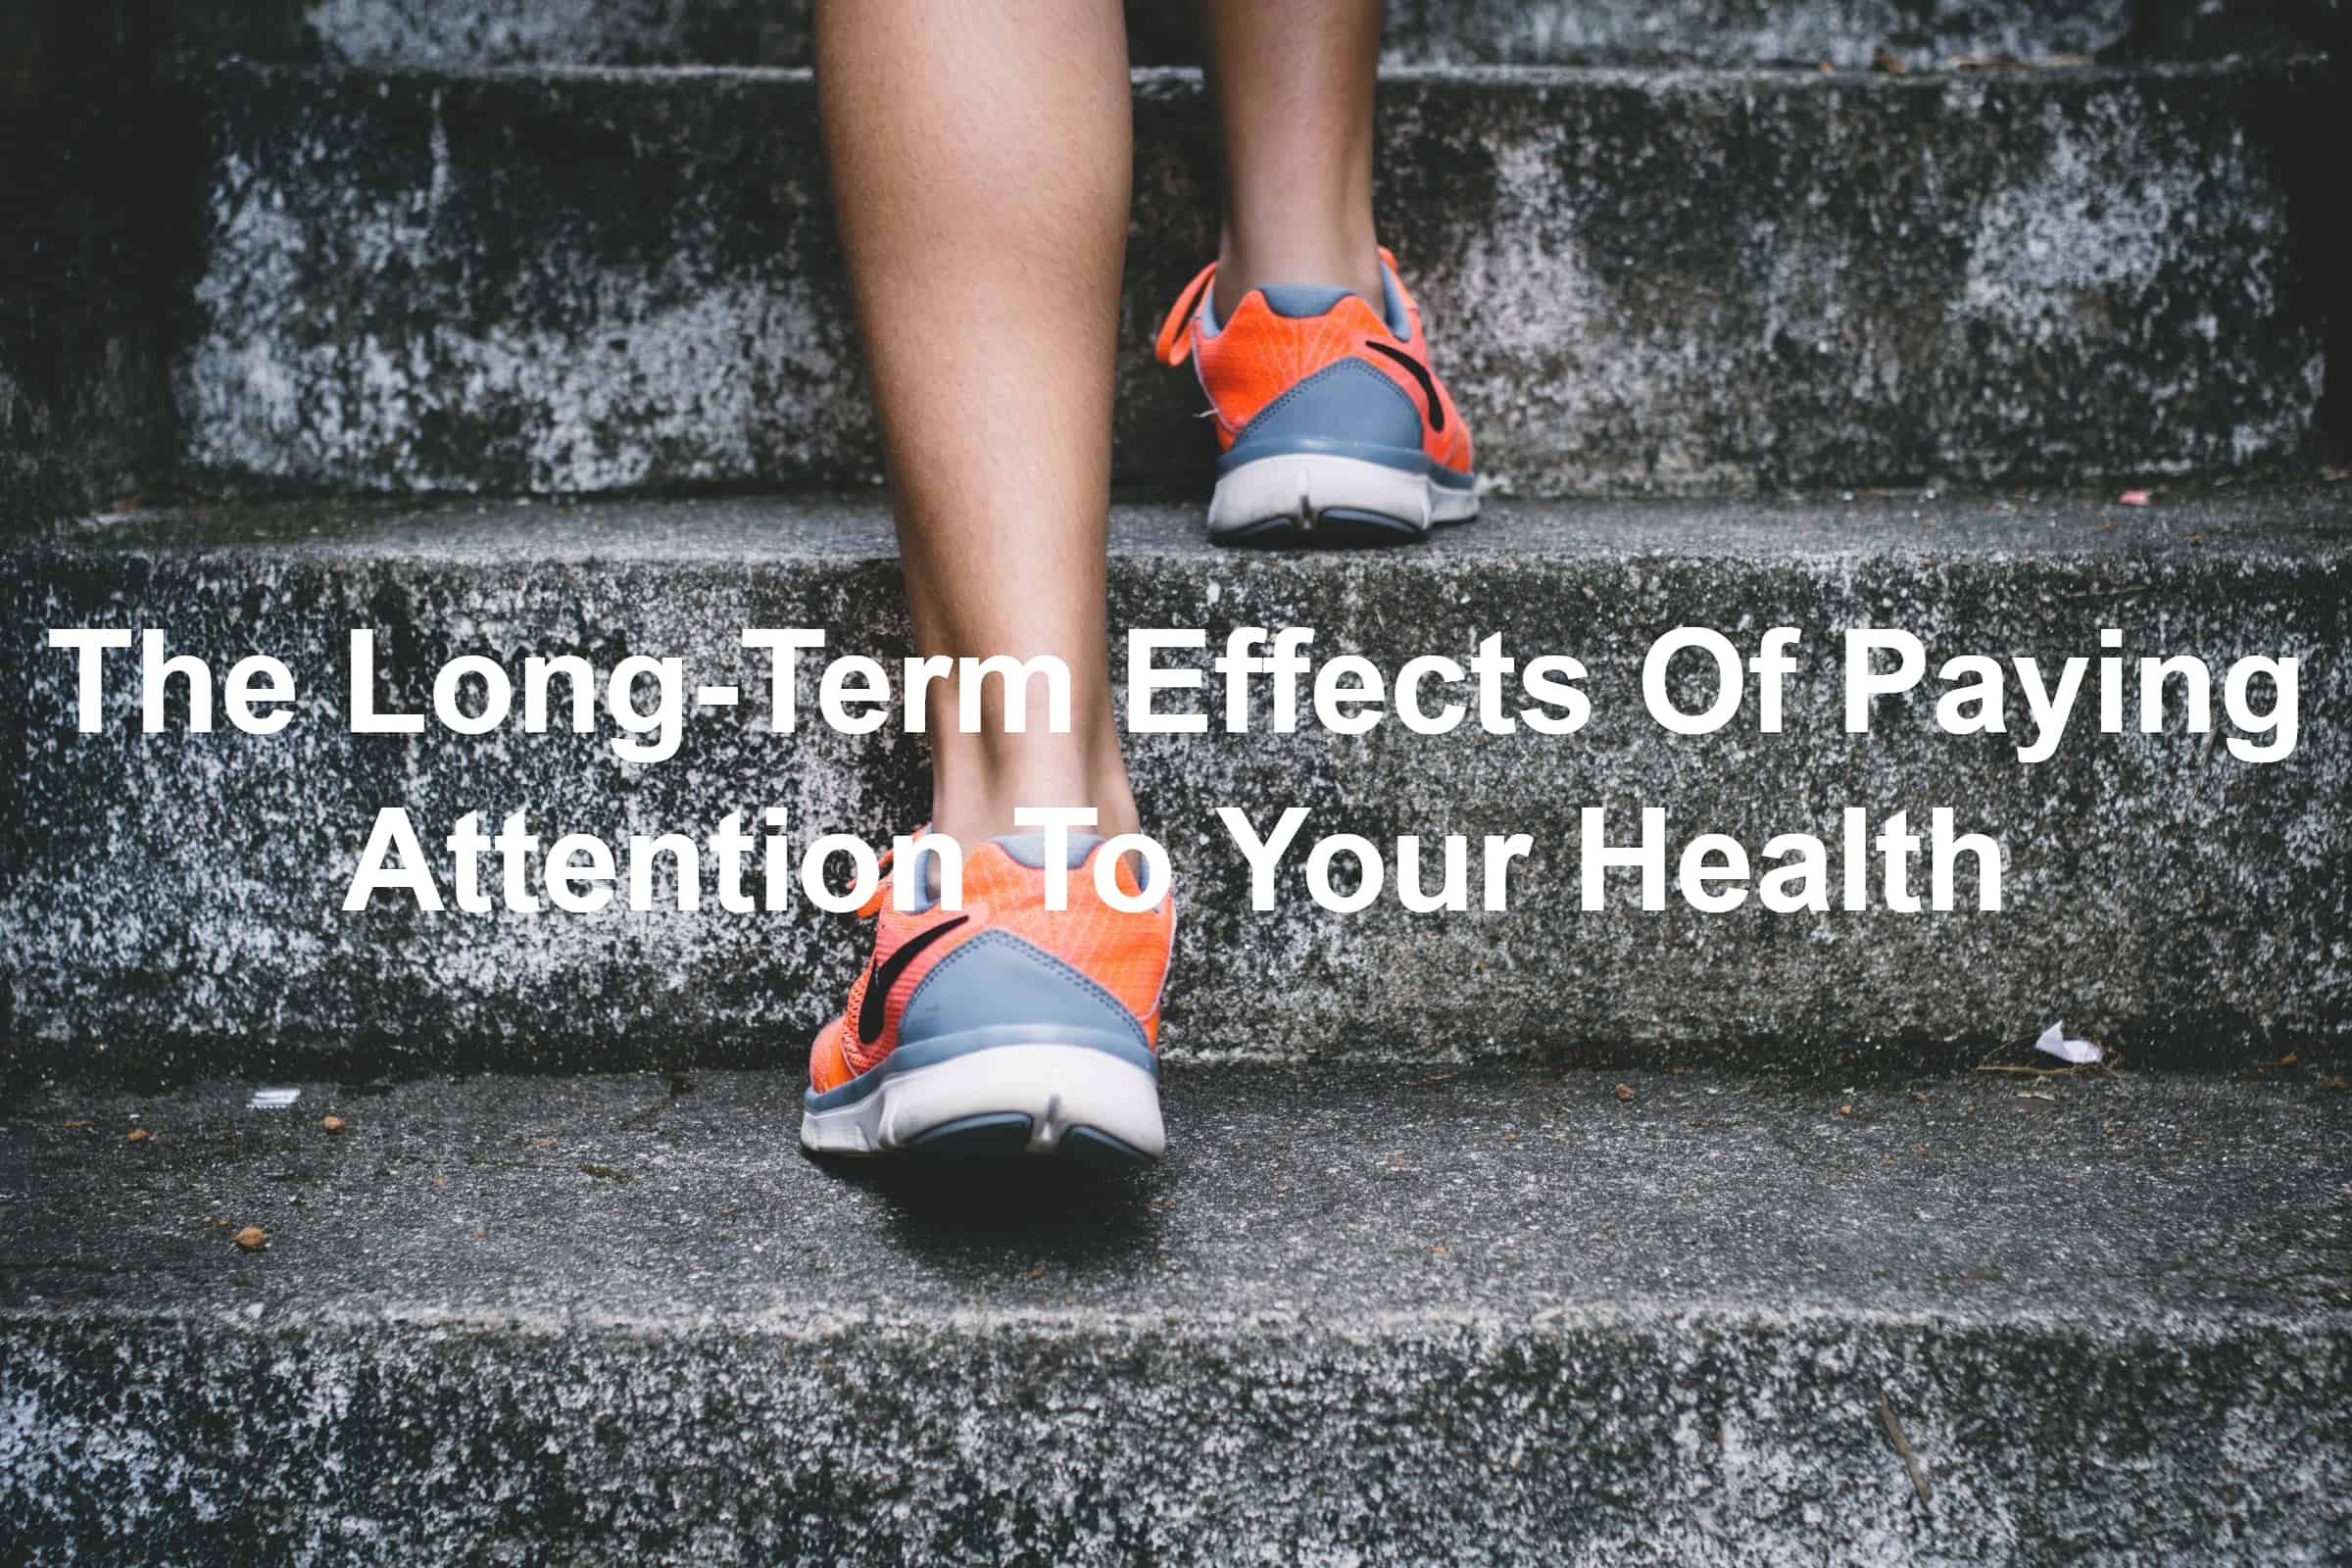 Take care of your health so you can lead better long-term